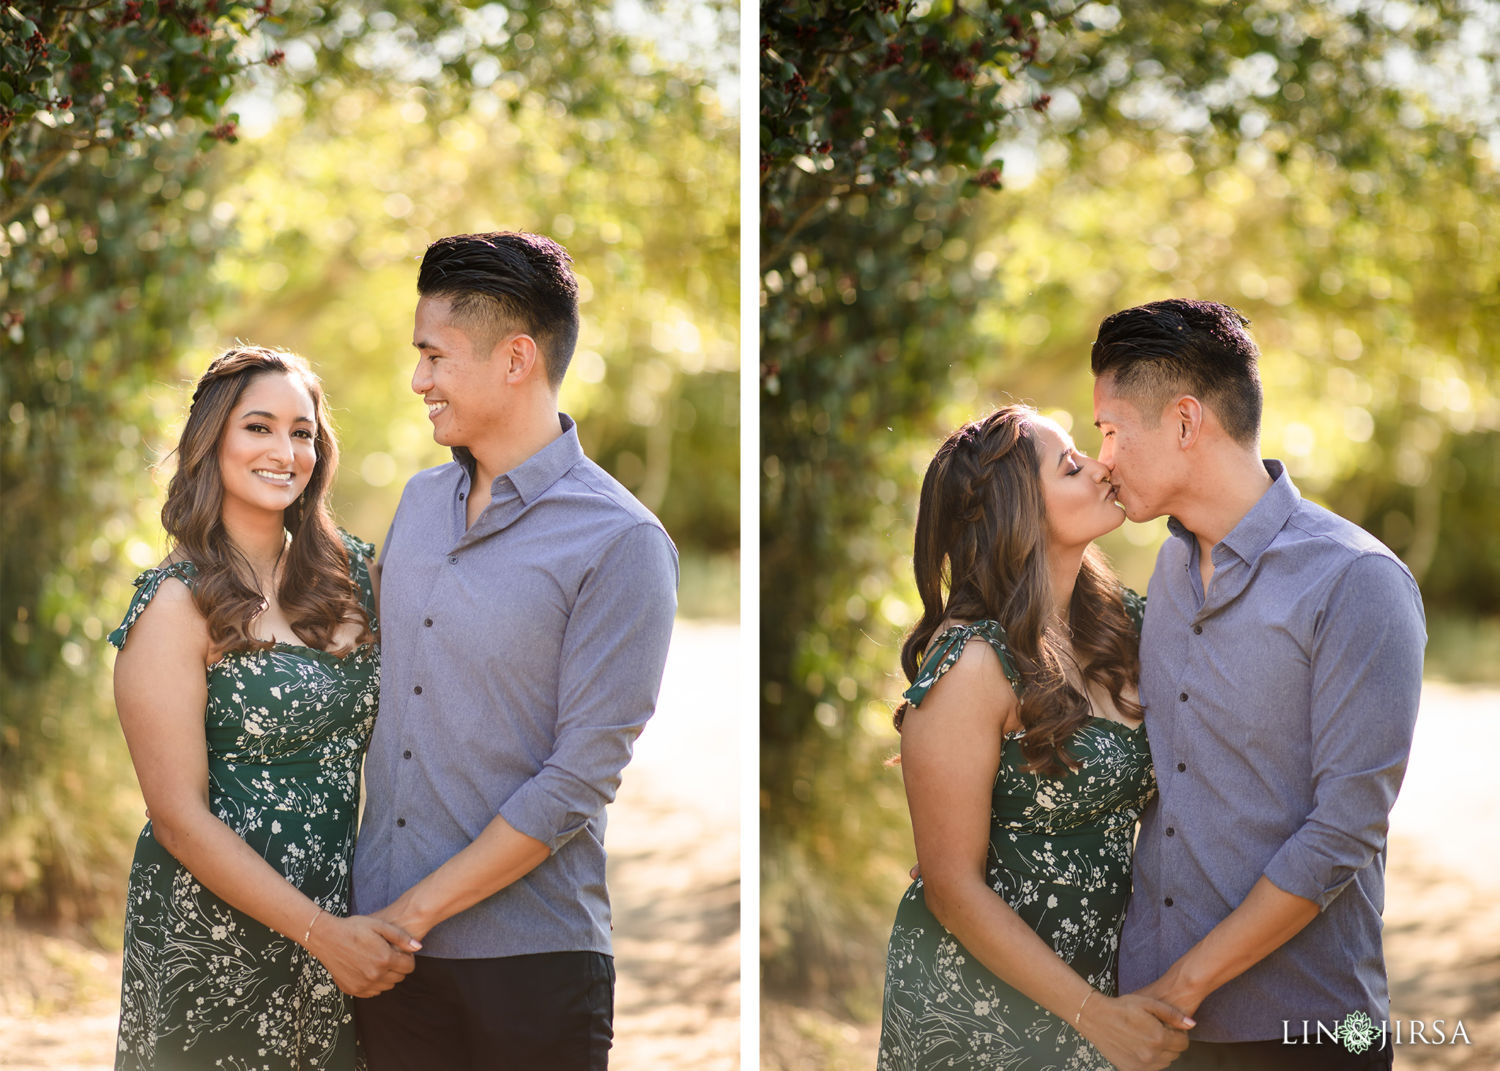 Top Of The World Engagement Session | Tannaz and Derrick